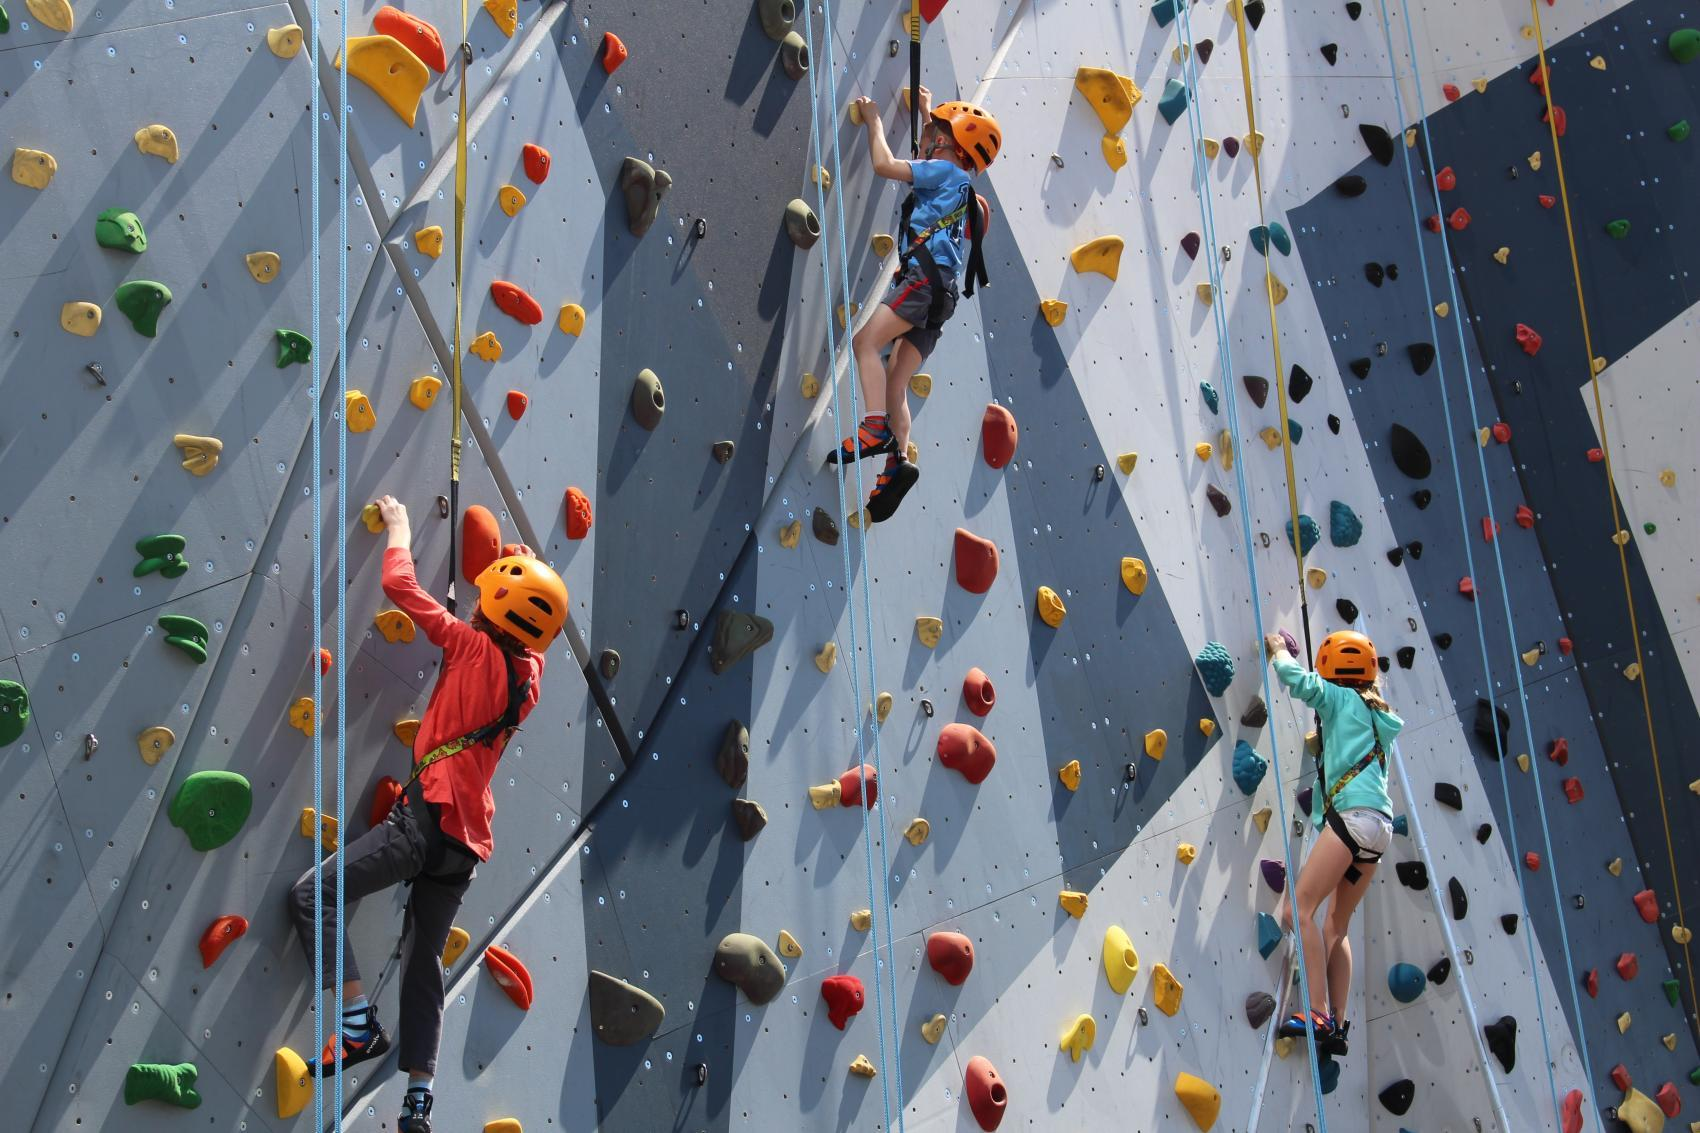 The Climbing Wall at Maggie Daley Park can hold up to 100 climbers at any given time. (Courtesy Chicago Park District)